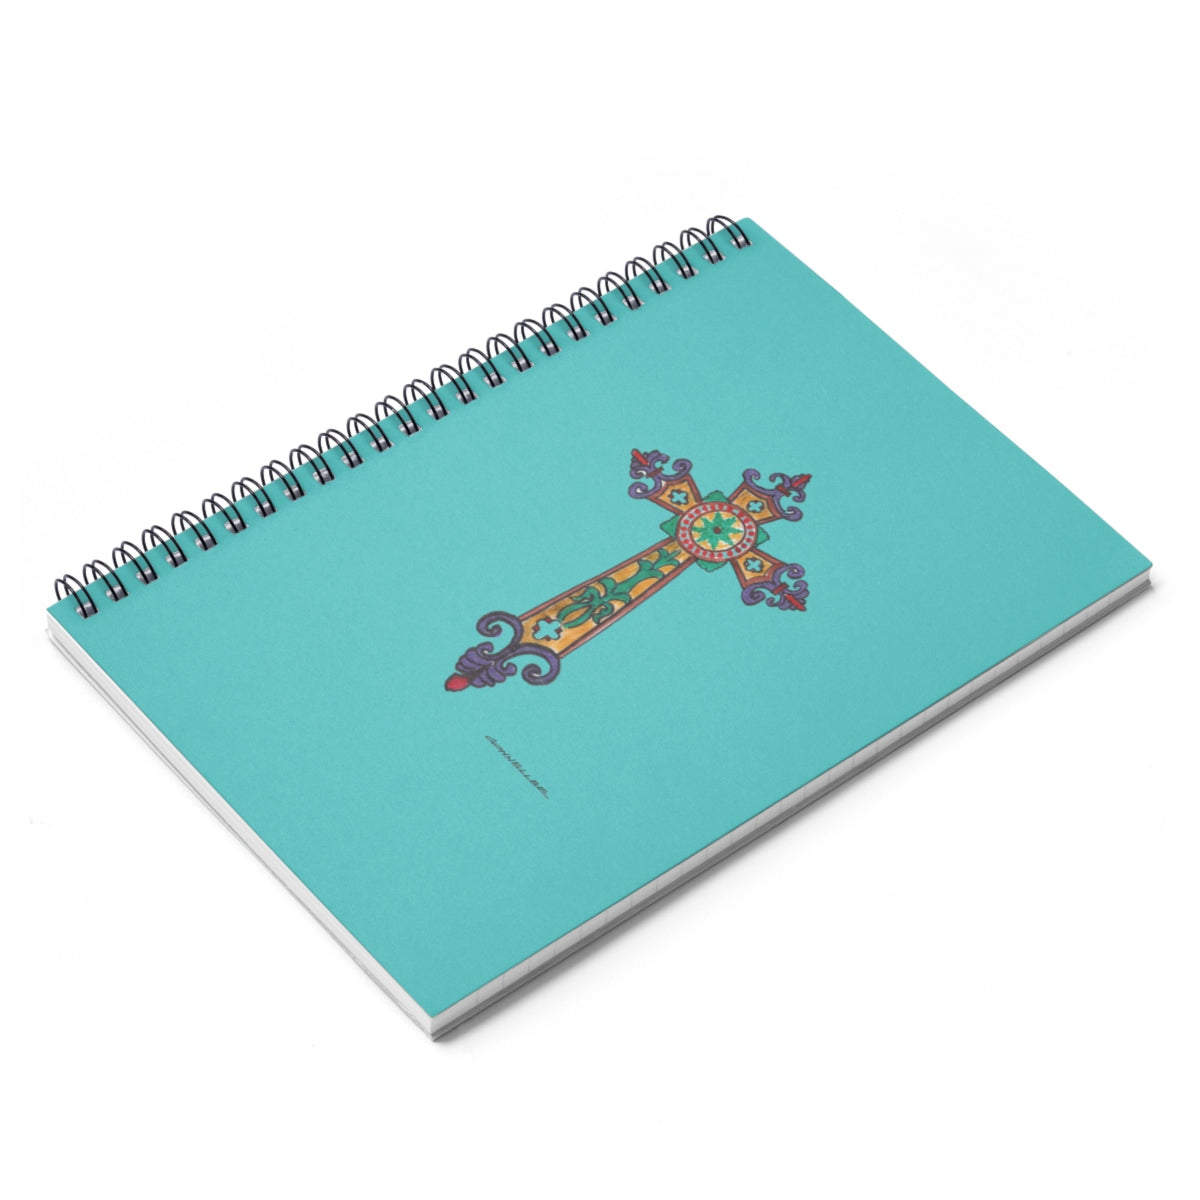 Medieval Cross Spiral Notebook - Ruled Line - Falling Leaf Card Co.